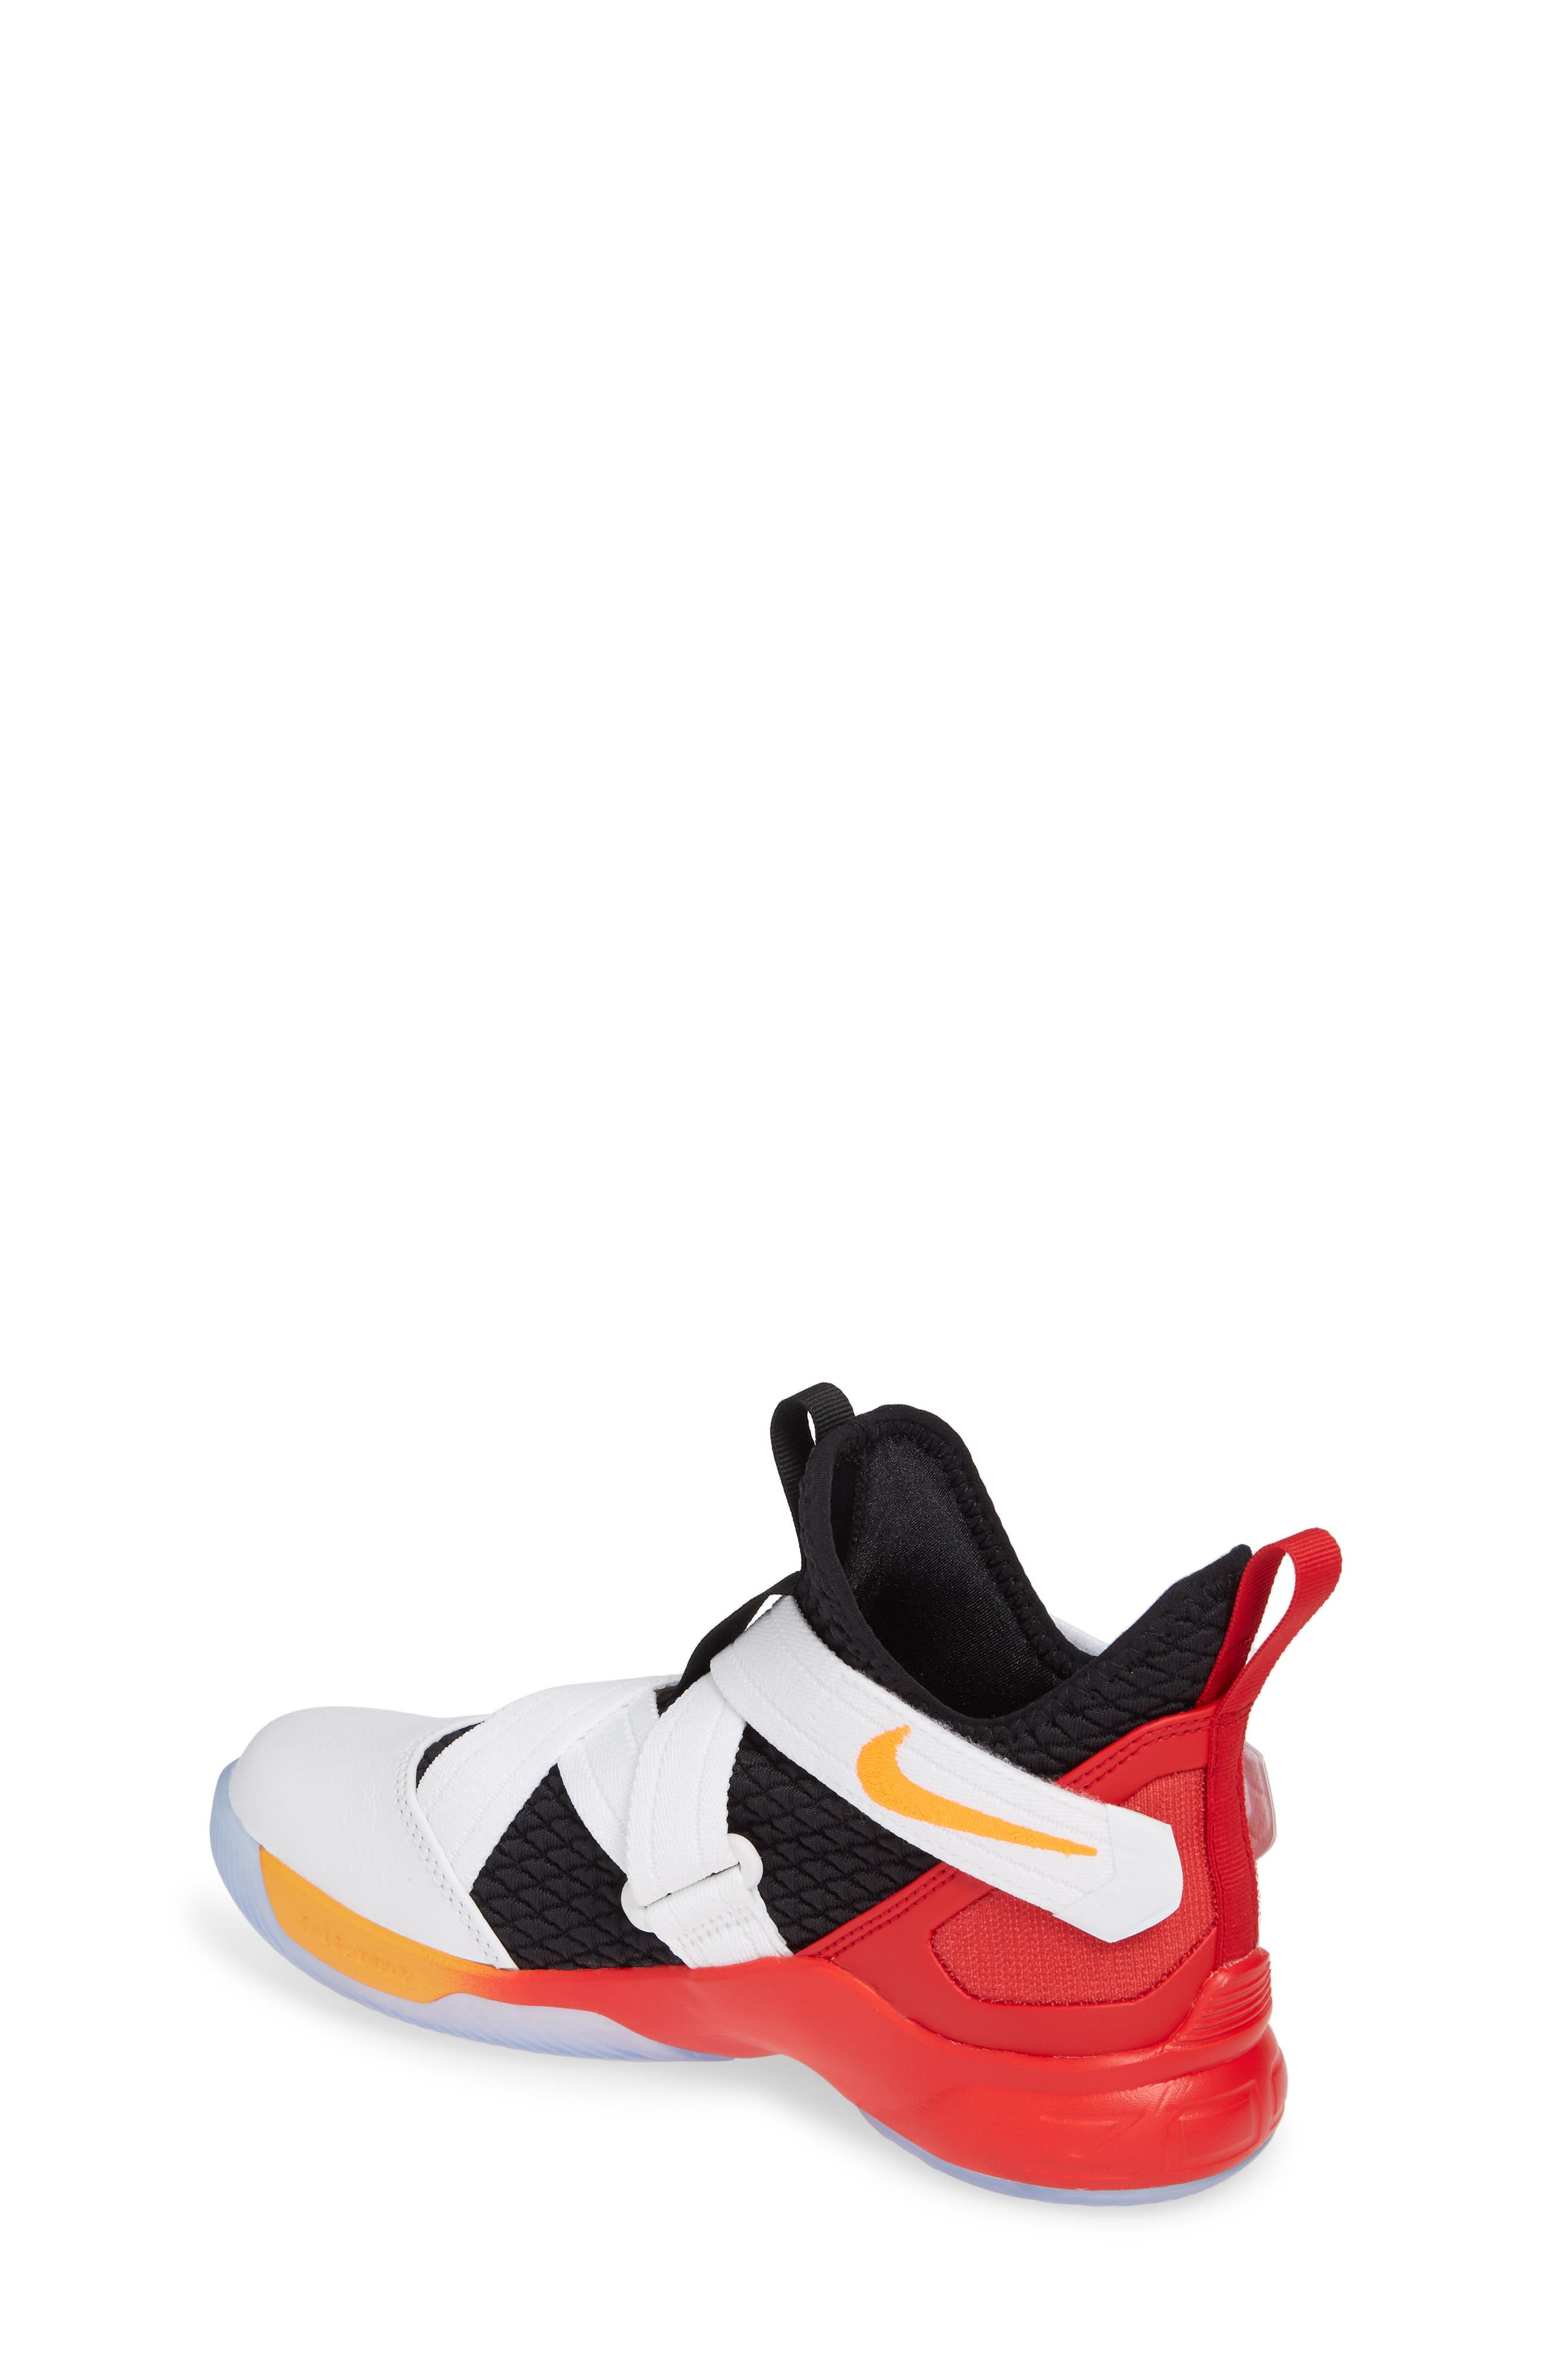 the best attitude 3b6f7 6f922 Kids  Basketball Shoes   Nordstrom